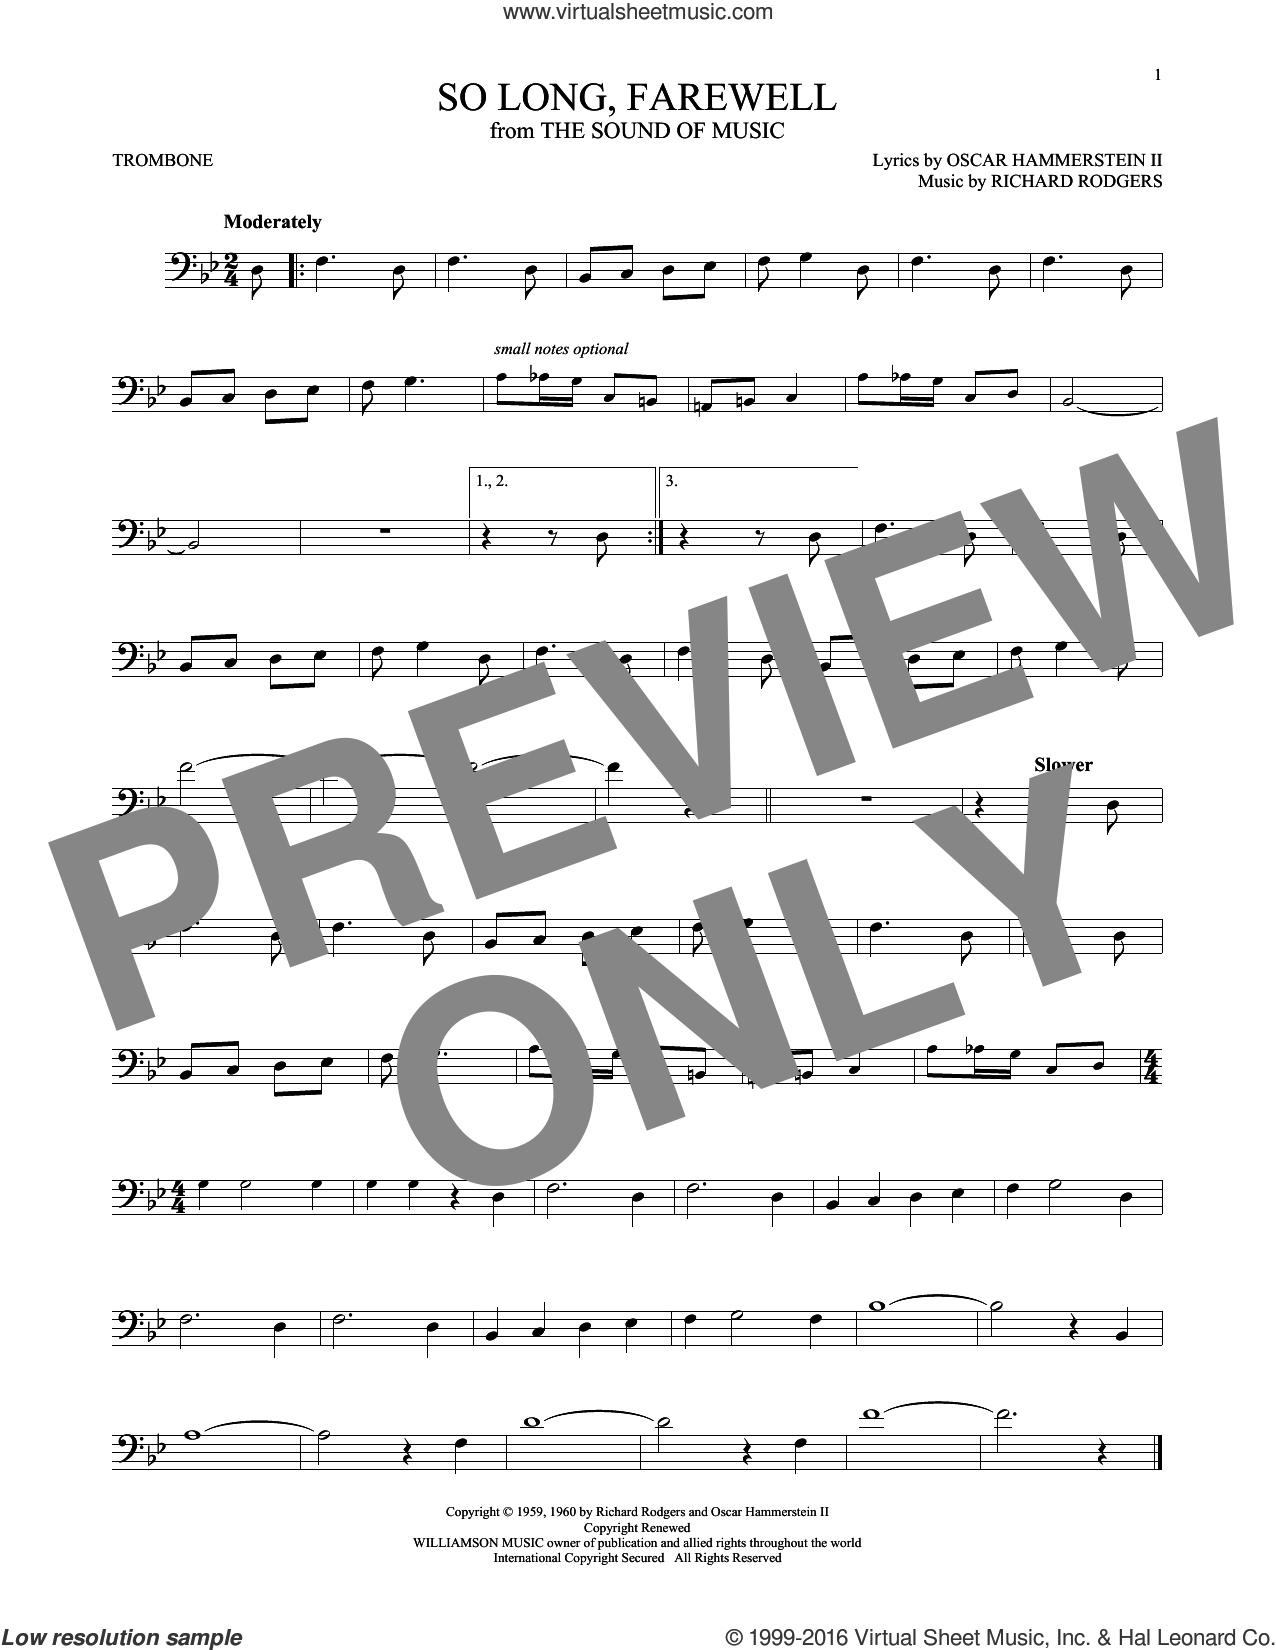 So Long, Farewell sheet music for trombone solo by Rodgers & Hammerstein, Oscar II Hammerstein and Richard Rodgers, intermediate skill level